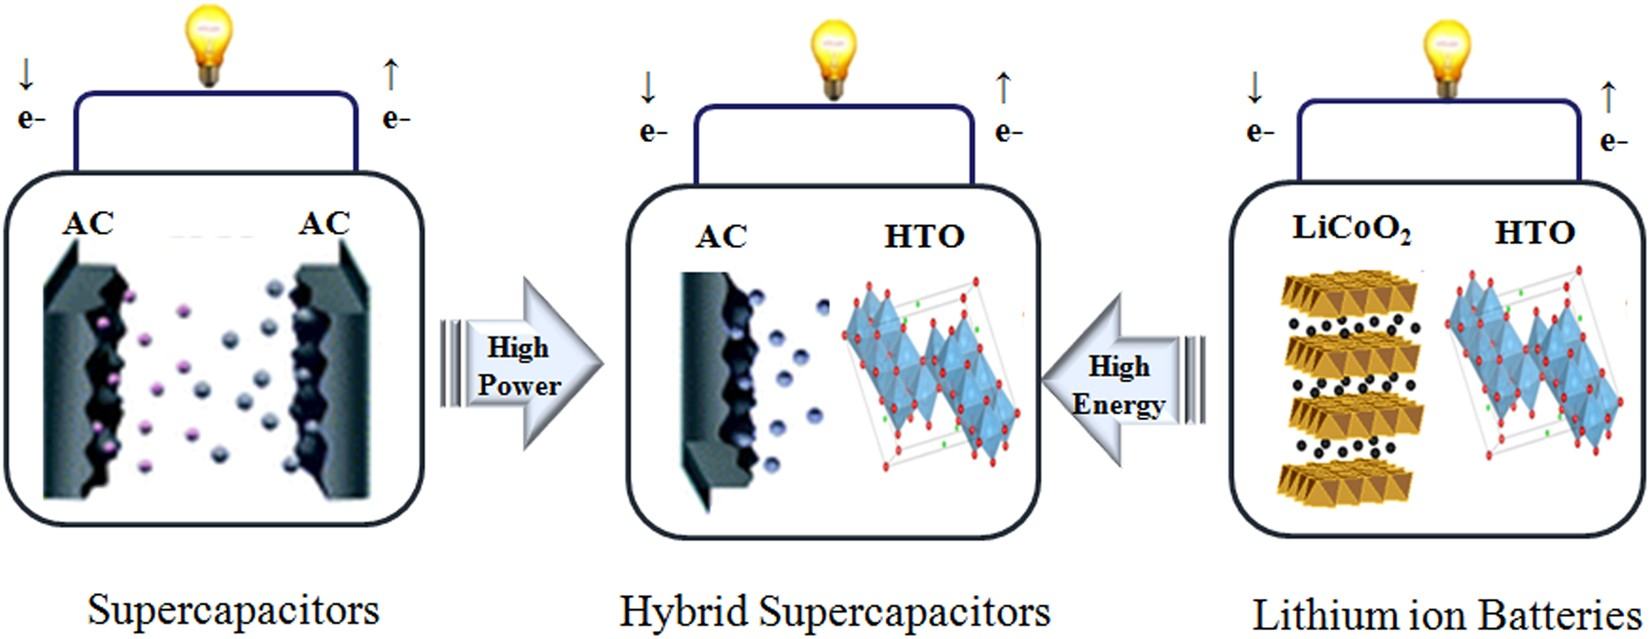 Laser Scribed Graphene Cathode For Next Generation Of High Ccvs Current Controlled Voltage Source In Practice Electrical Performance Hybrid Supercapacitors Scientific Reports